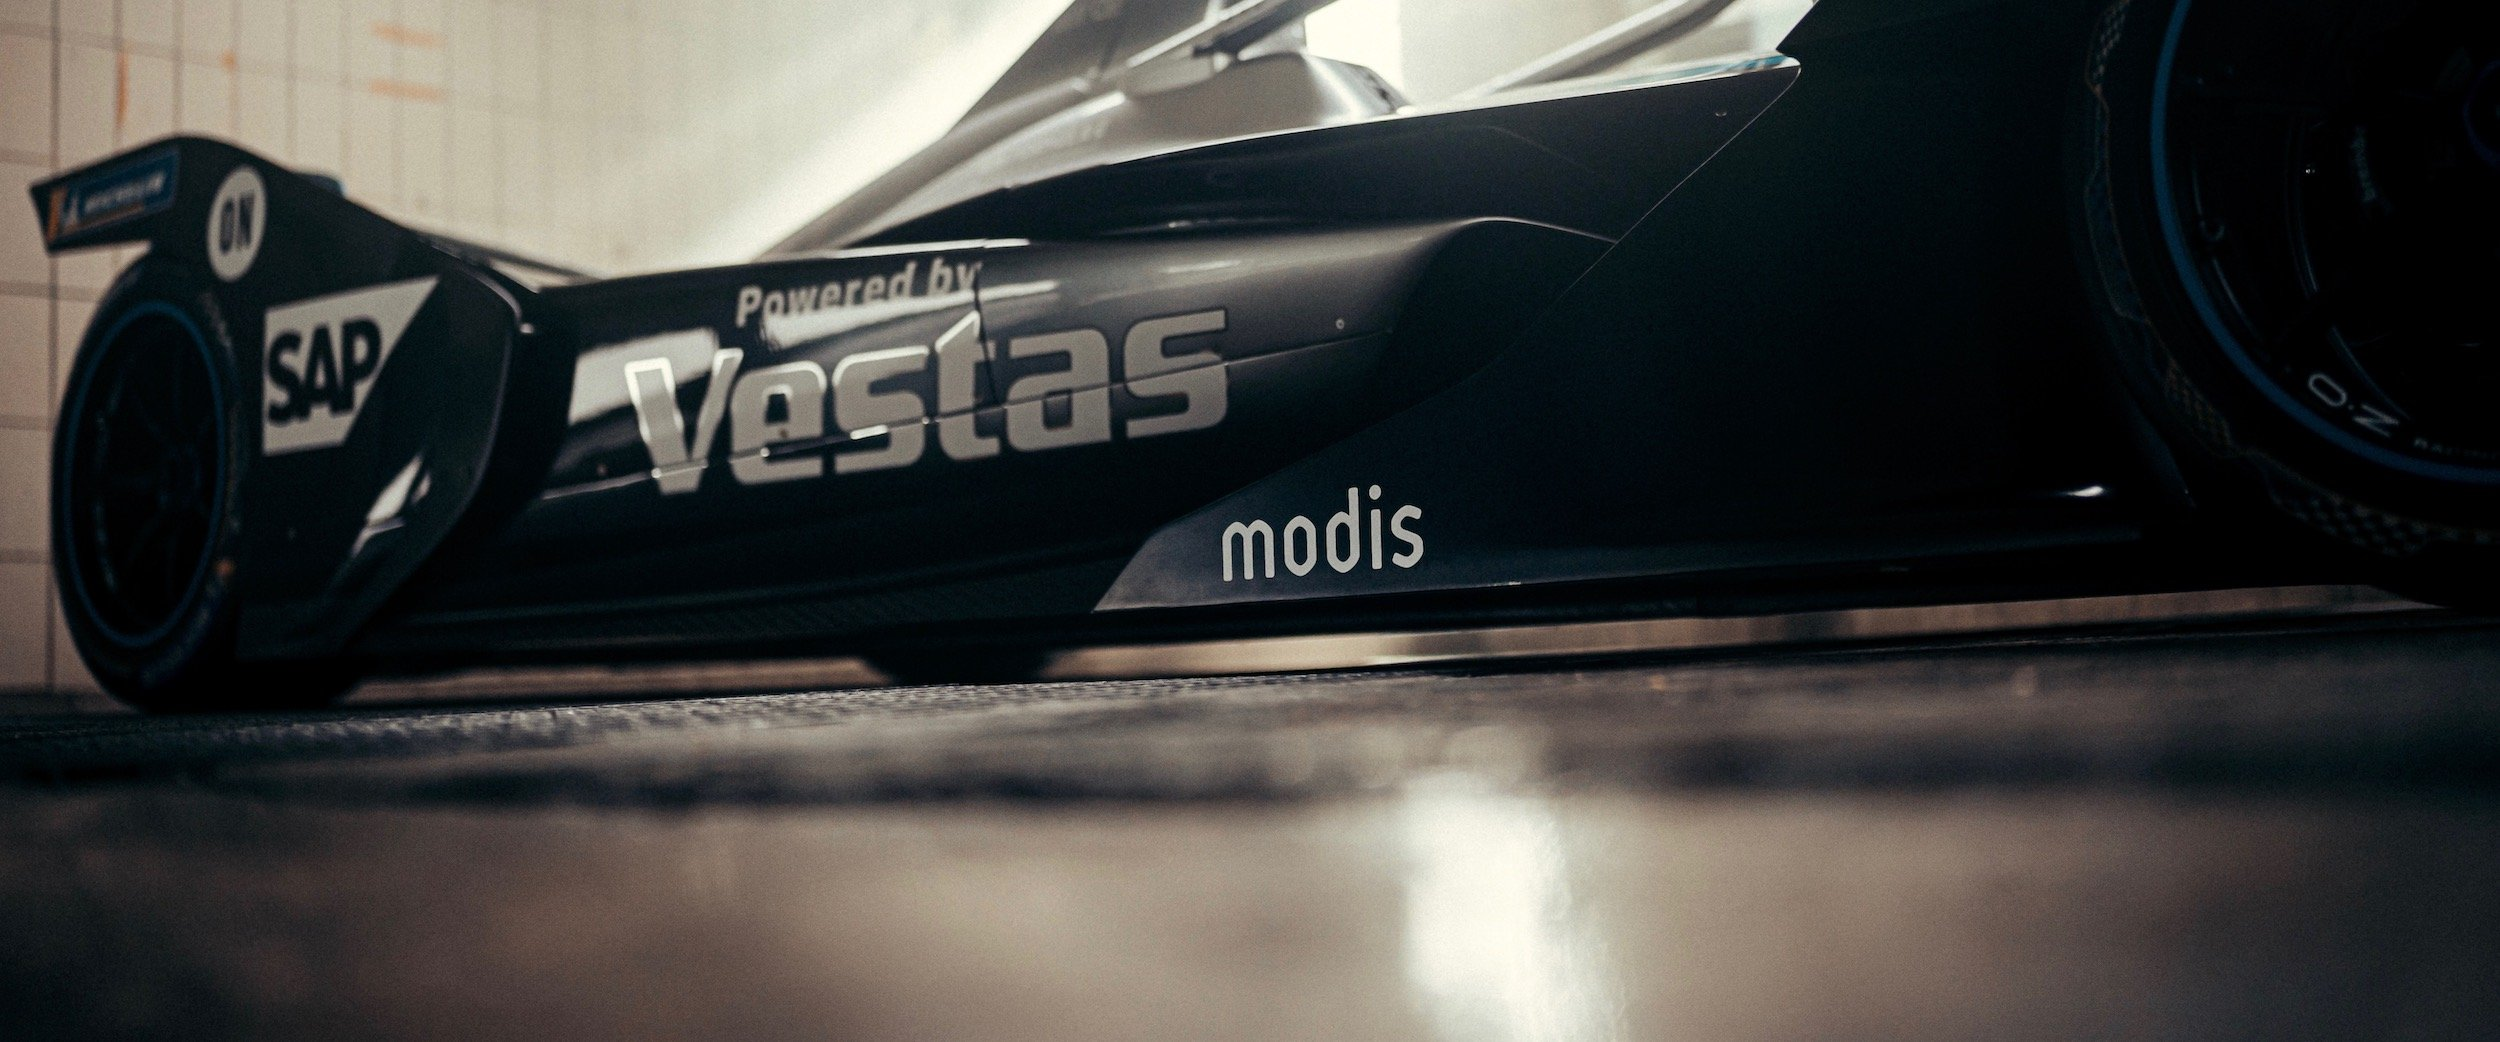 Modis logo on the Mercedes-Benz EQ Silver Arrow 02